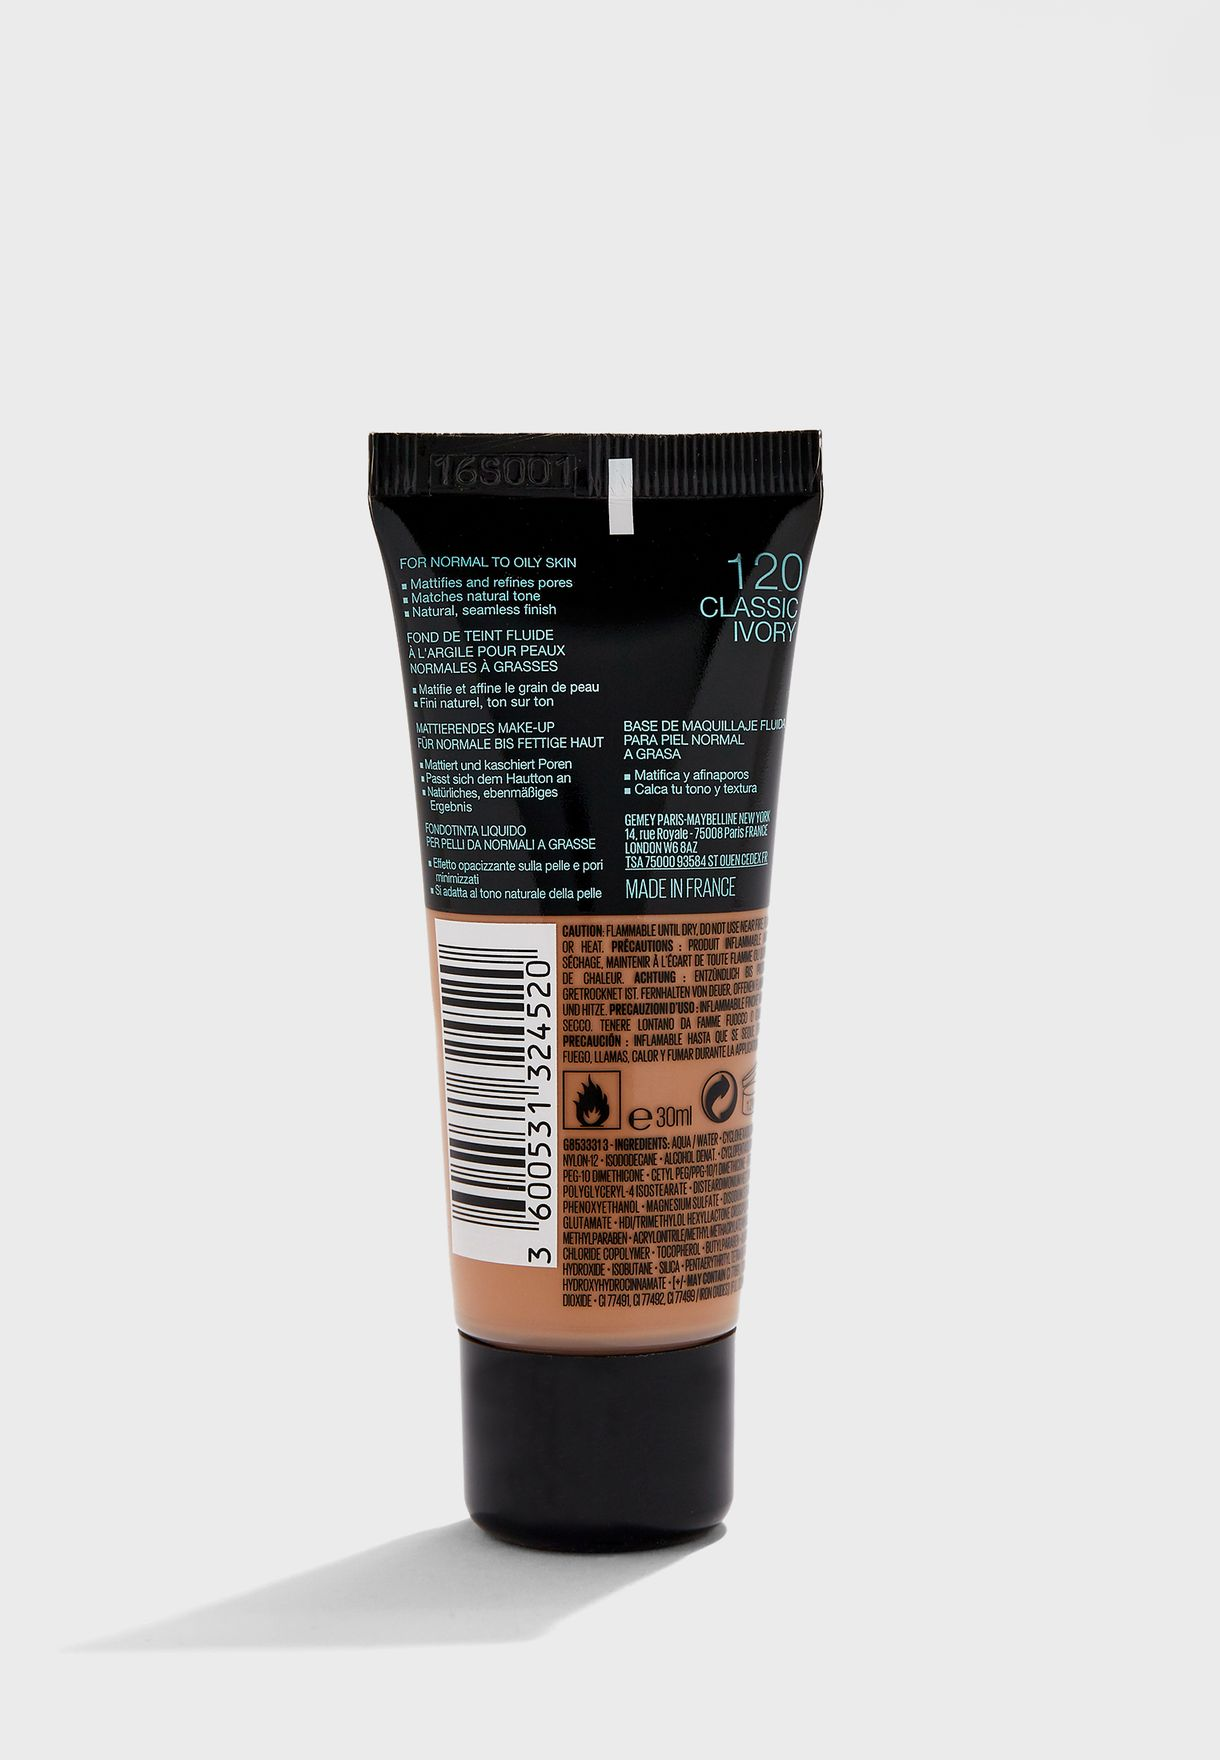 Fit Me Matte and Poreless Foundation 120 Classic Ivory